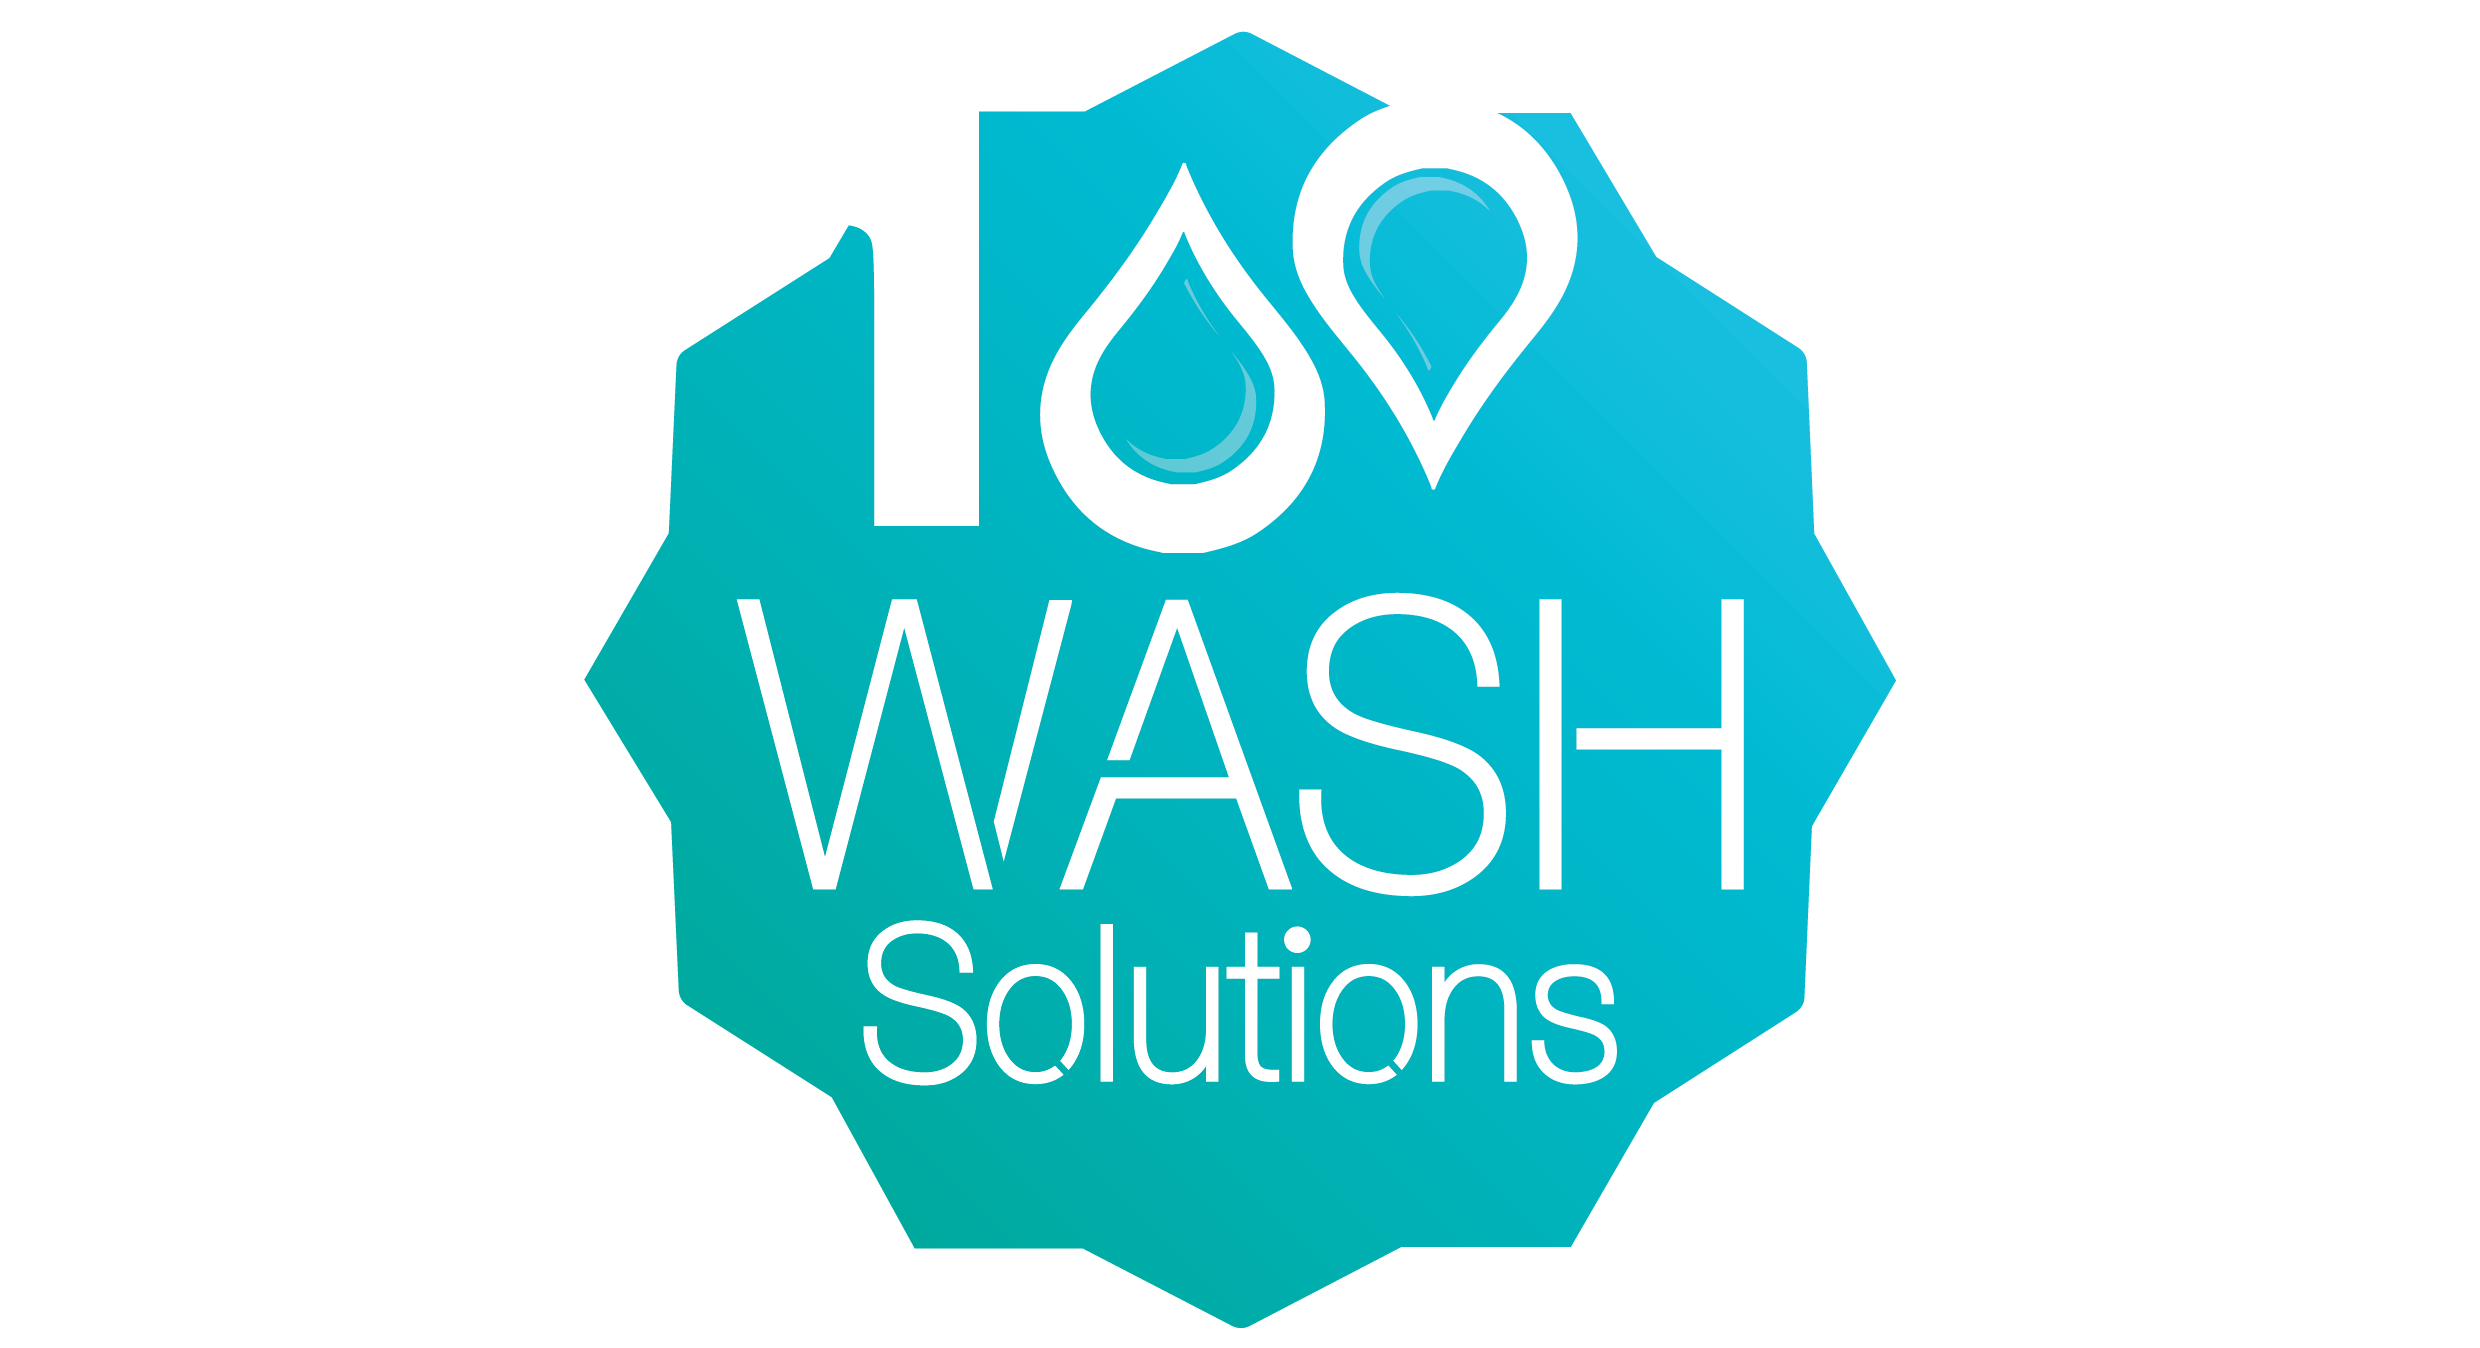 100 WASH Solutions